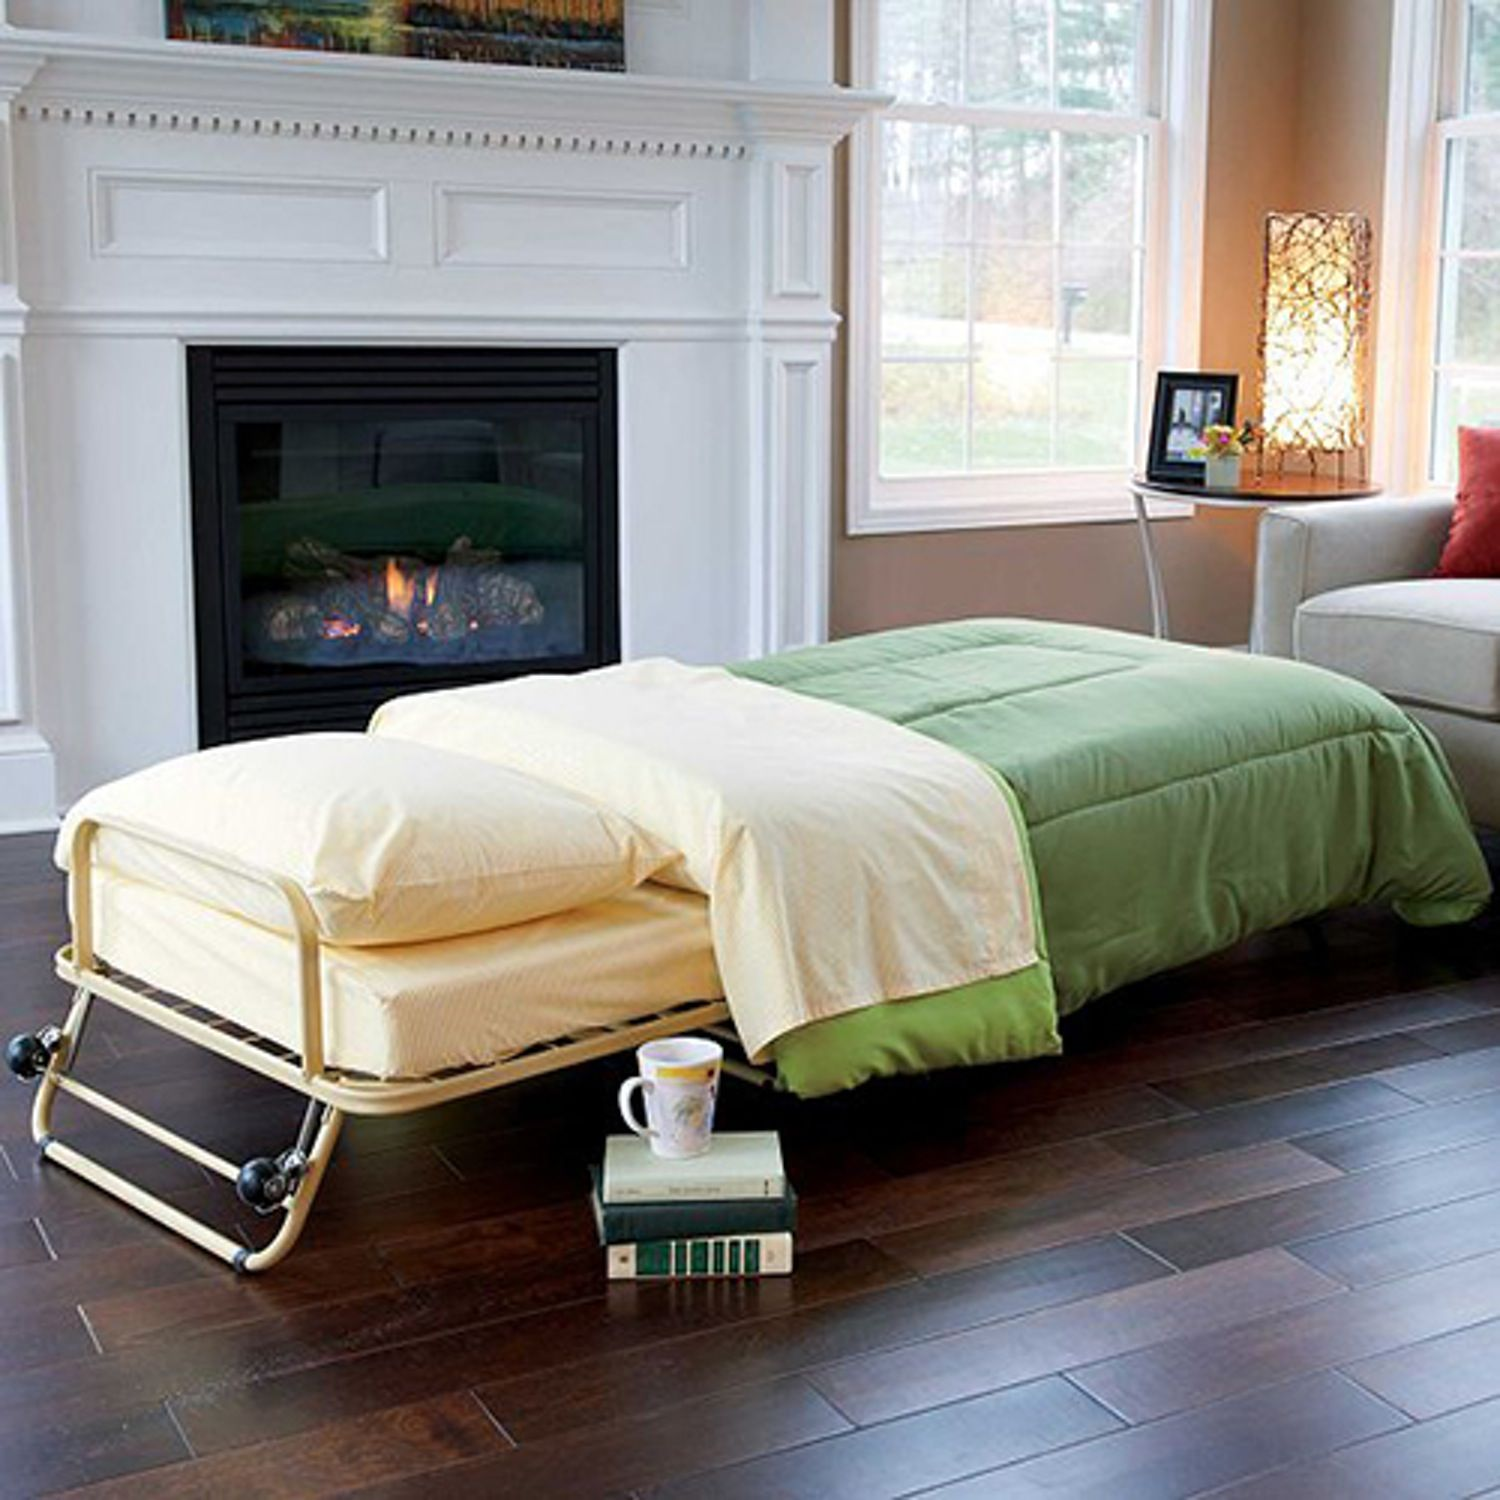 Affordable Sleeper Chairs and Ottomans Ottoman bed